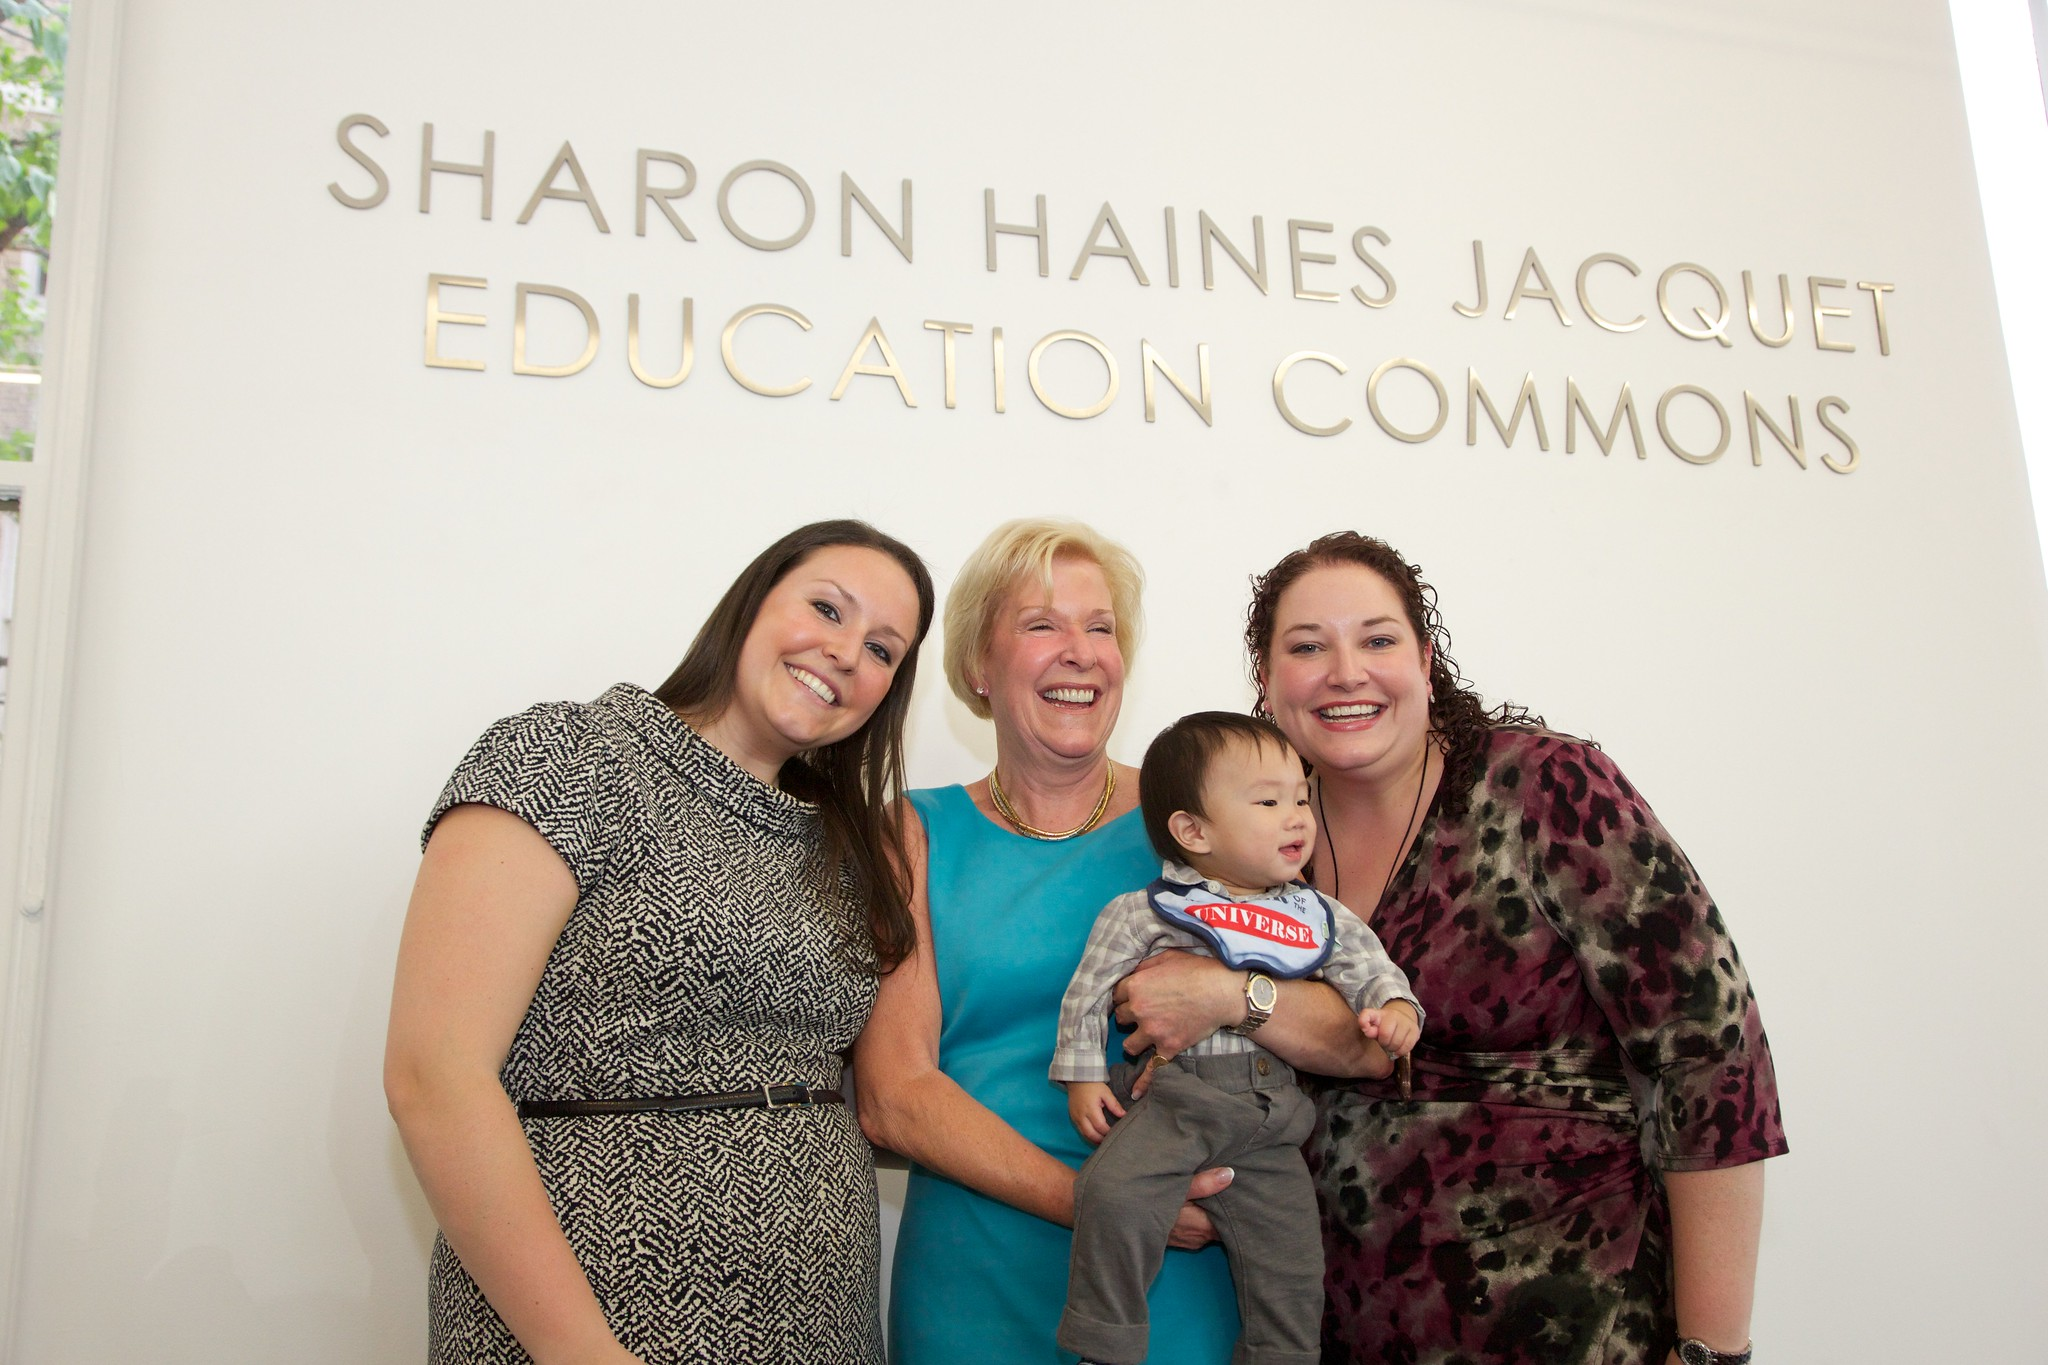 Sharon Jacquet (center) with family at the dedication of the Sharon Haines Jacquet Education Commons in May 2013